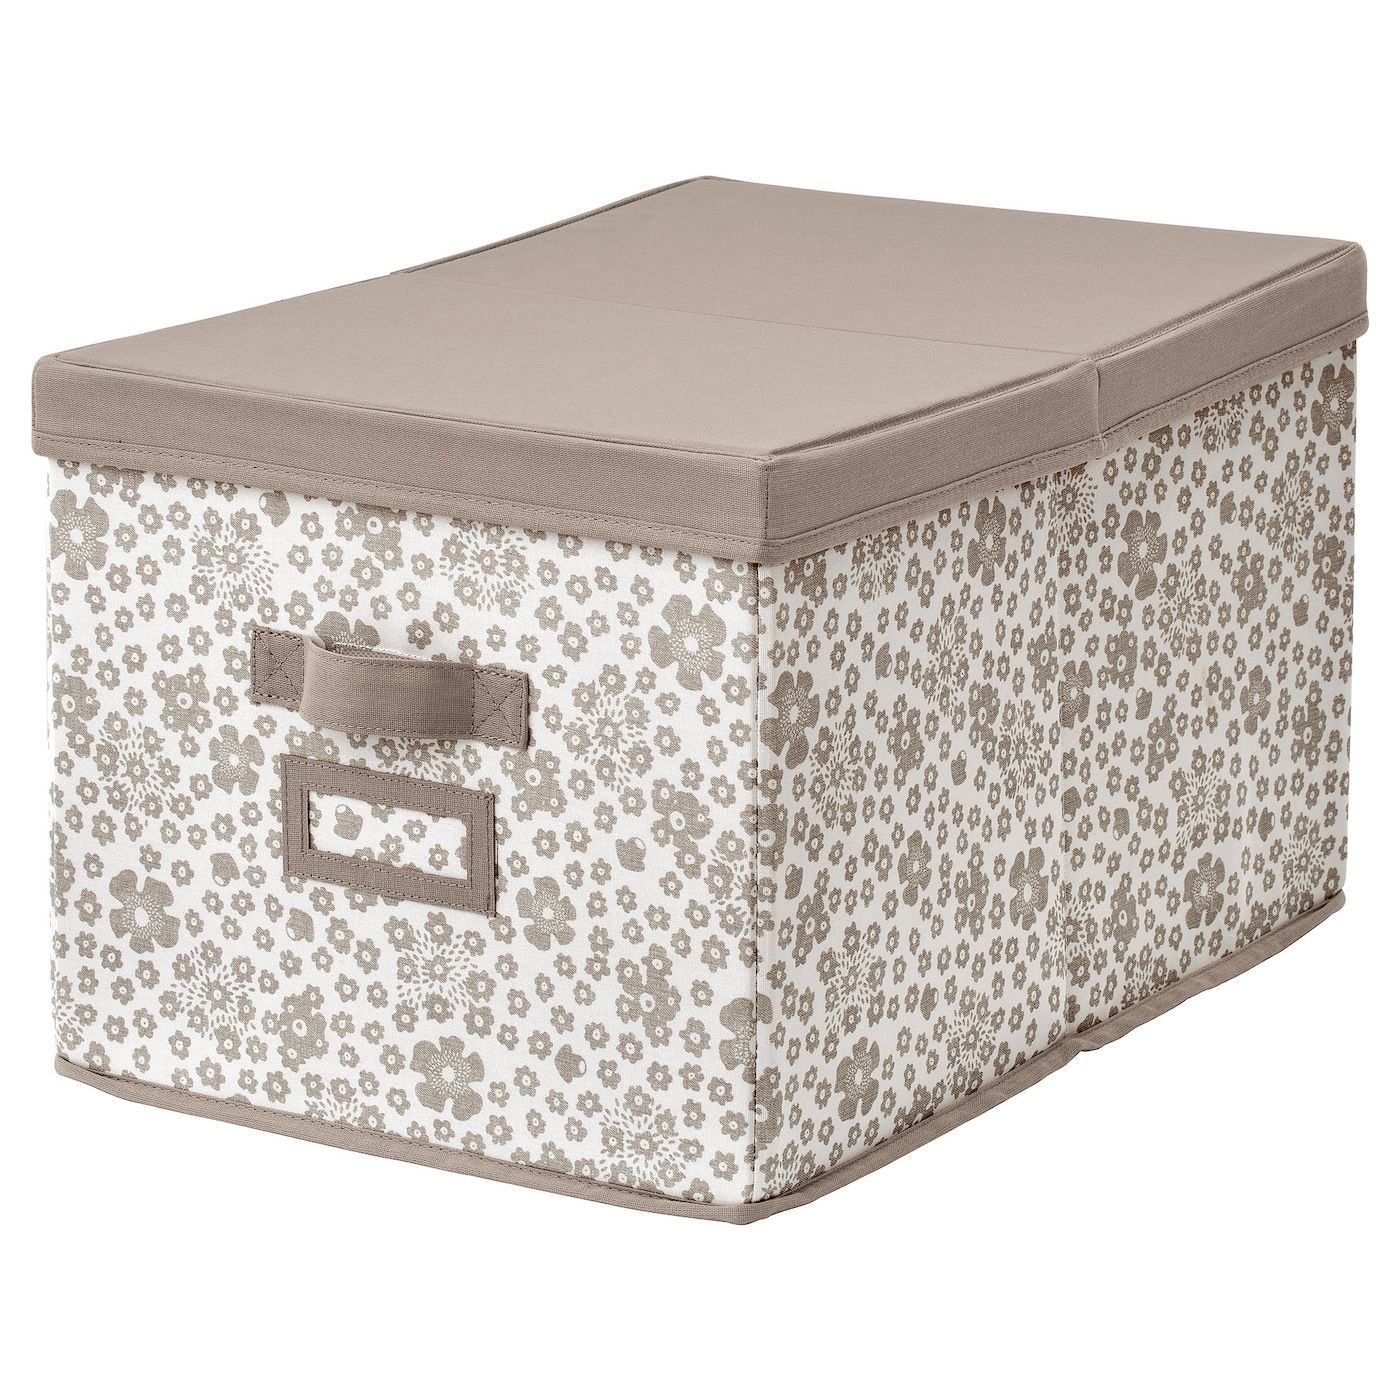 Storbe Box With Lid Beige 13 ¾x19